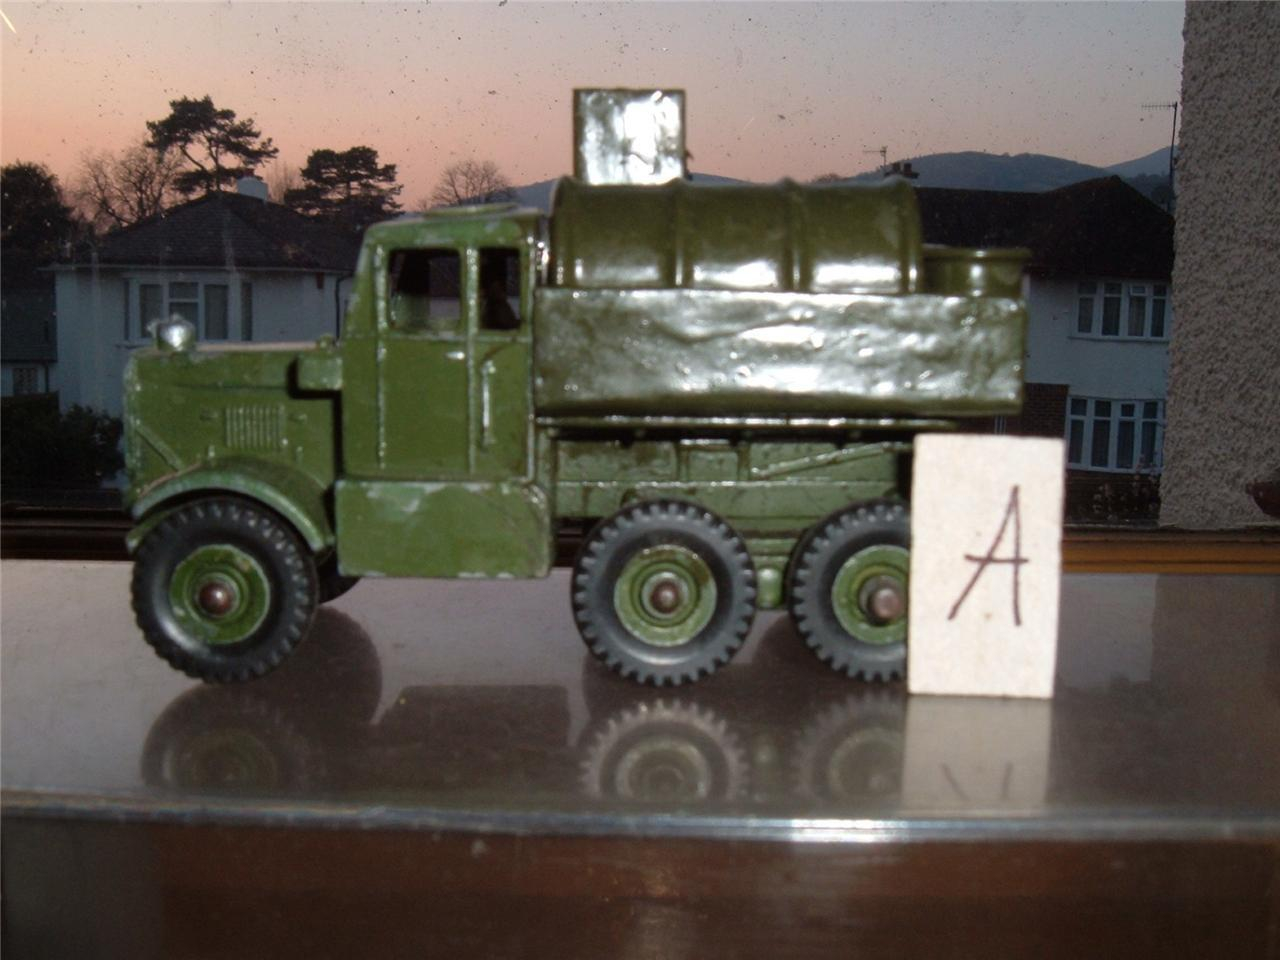 MILITARY SCAMMELL EXPLORER CONVERSION TO A LOAD CARRIER SCROLL DOWN 4 THE PICS